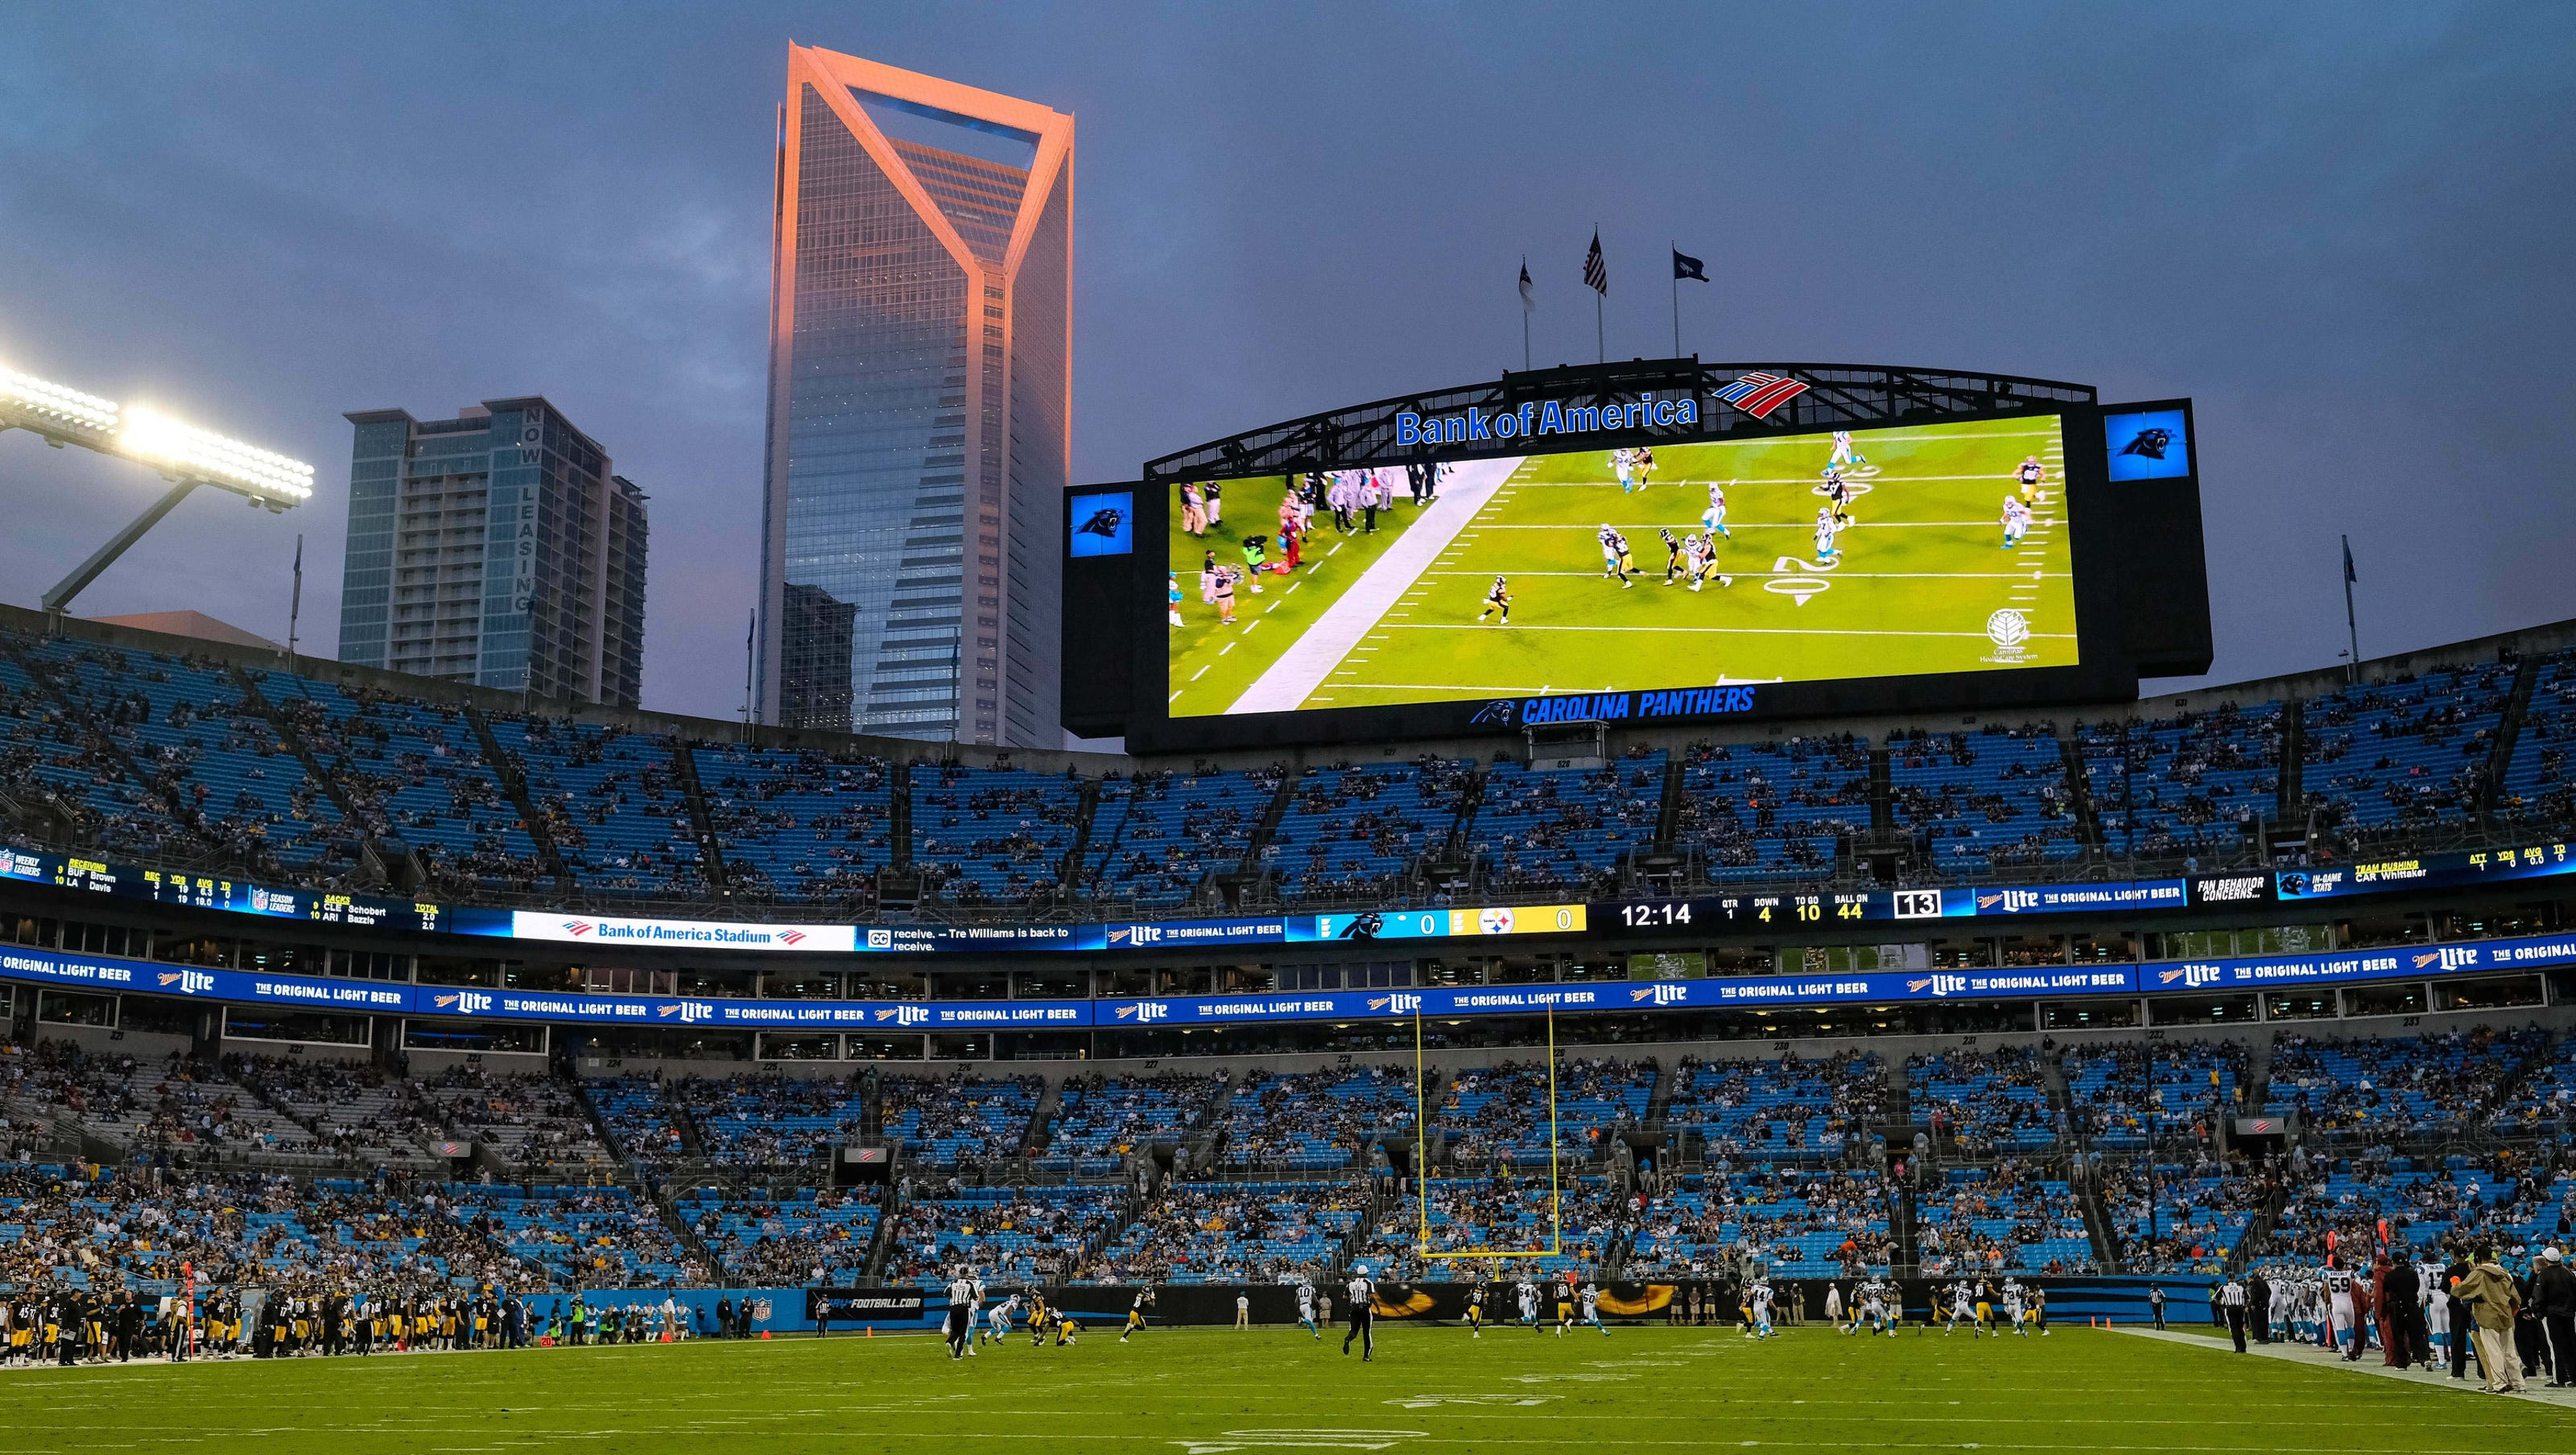 636674424513182972-xxx-nfl--pittsburgh-steelers-at-carolina-panthers-1275-96107425